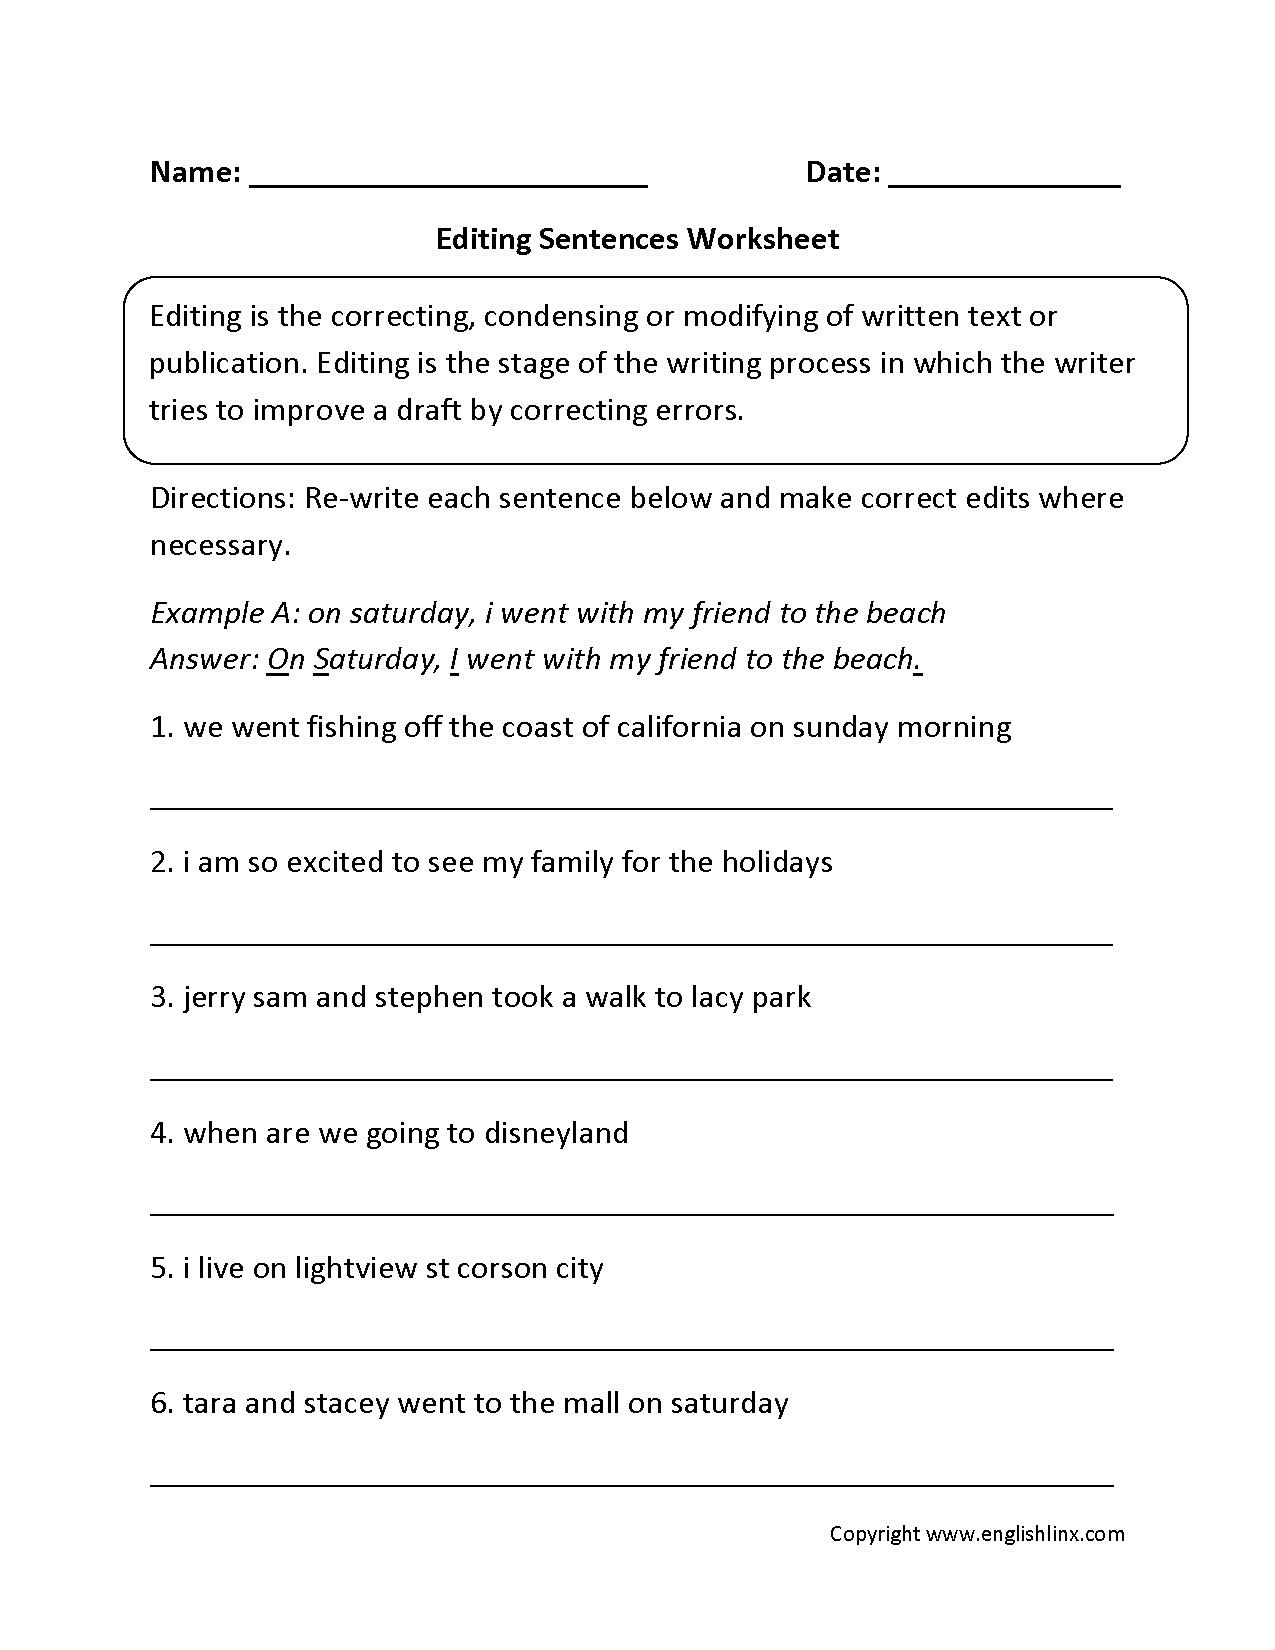 Proofreading Worksheets 5th Grade Editing Worksheet Sentece